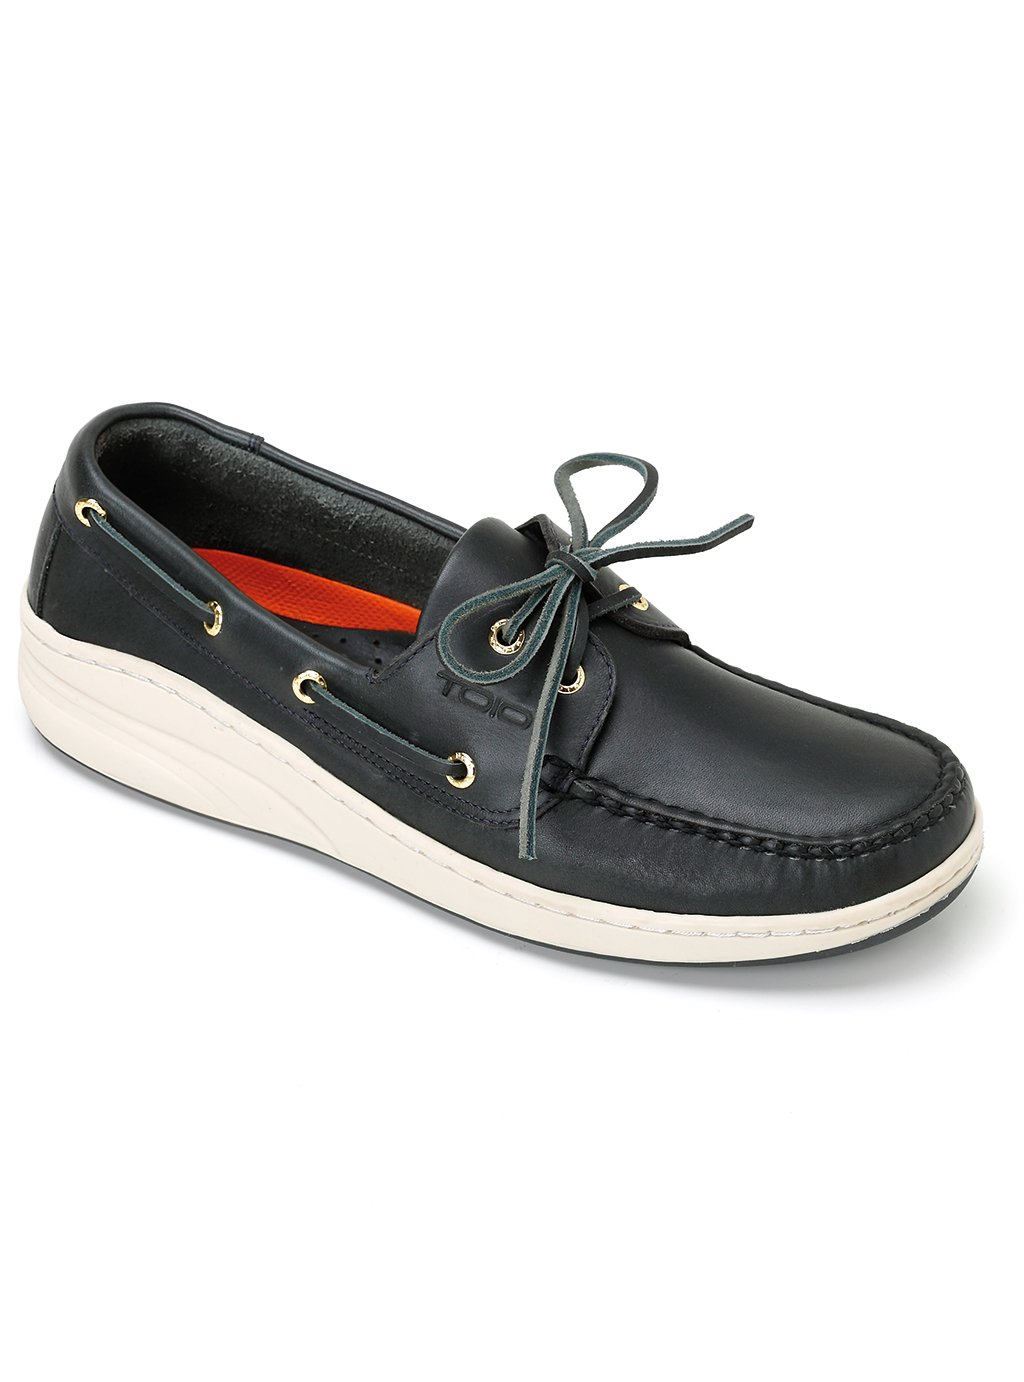 TOIO Uomo MARINE scarpe MOCASSIN Handcrafted 100% leather Navy rubber sole with anti-slip tread 42 Leather boat show with laces and eyelets…